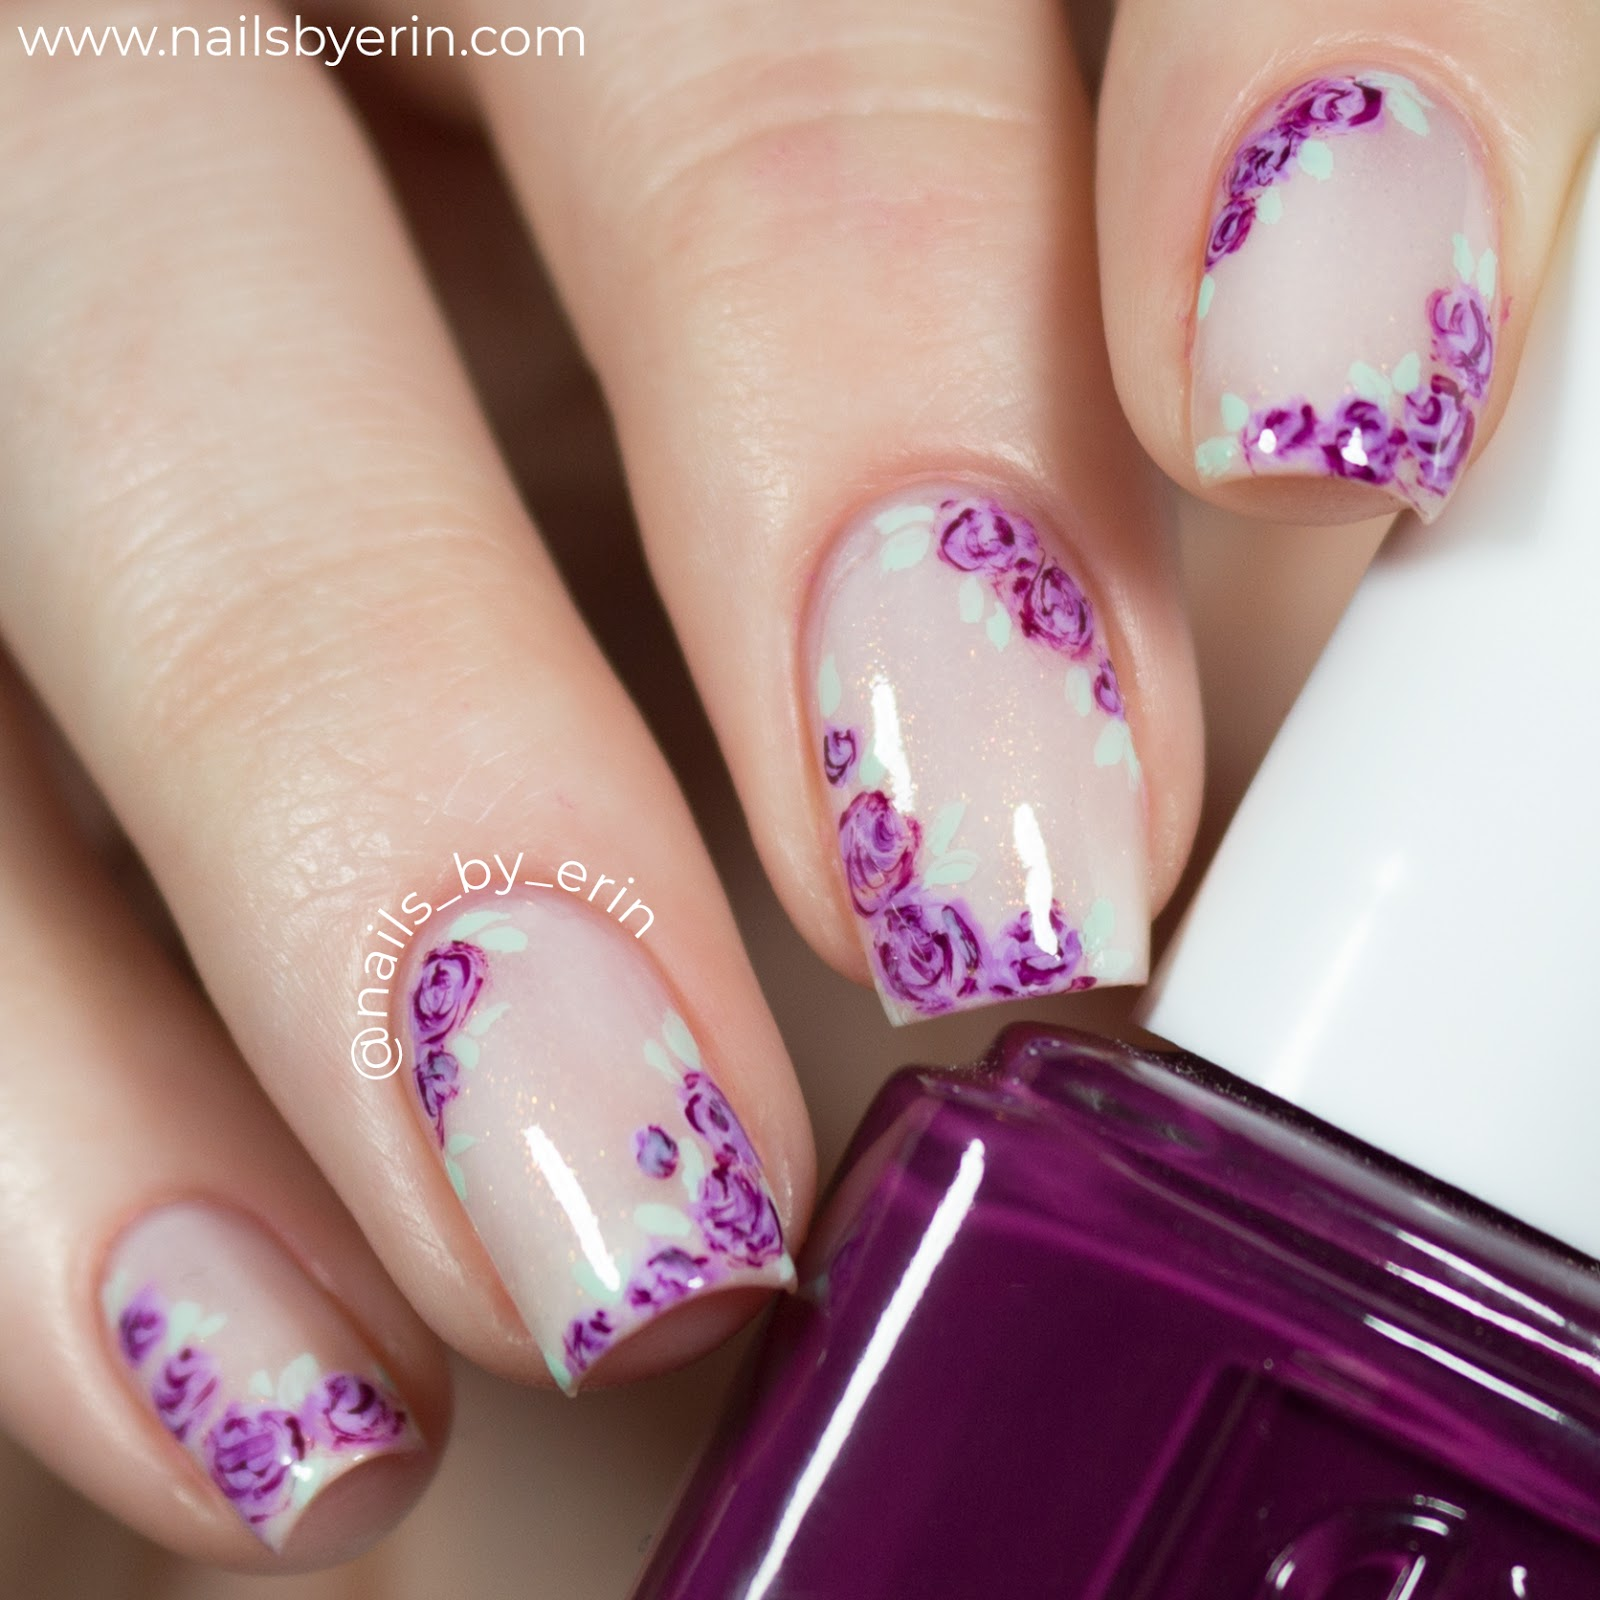 NailsByErin: Sheer White and Purple Floral Nails